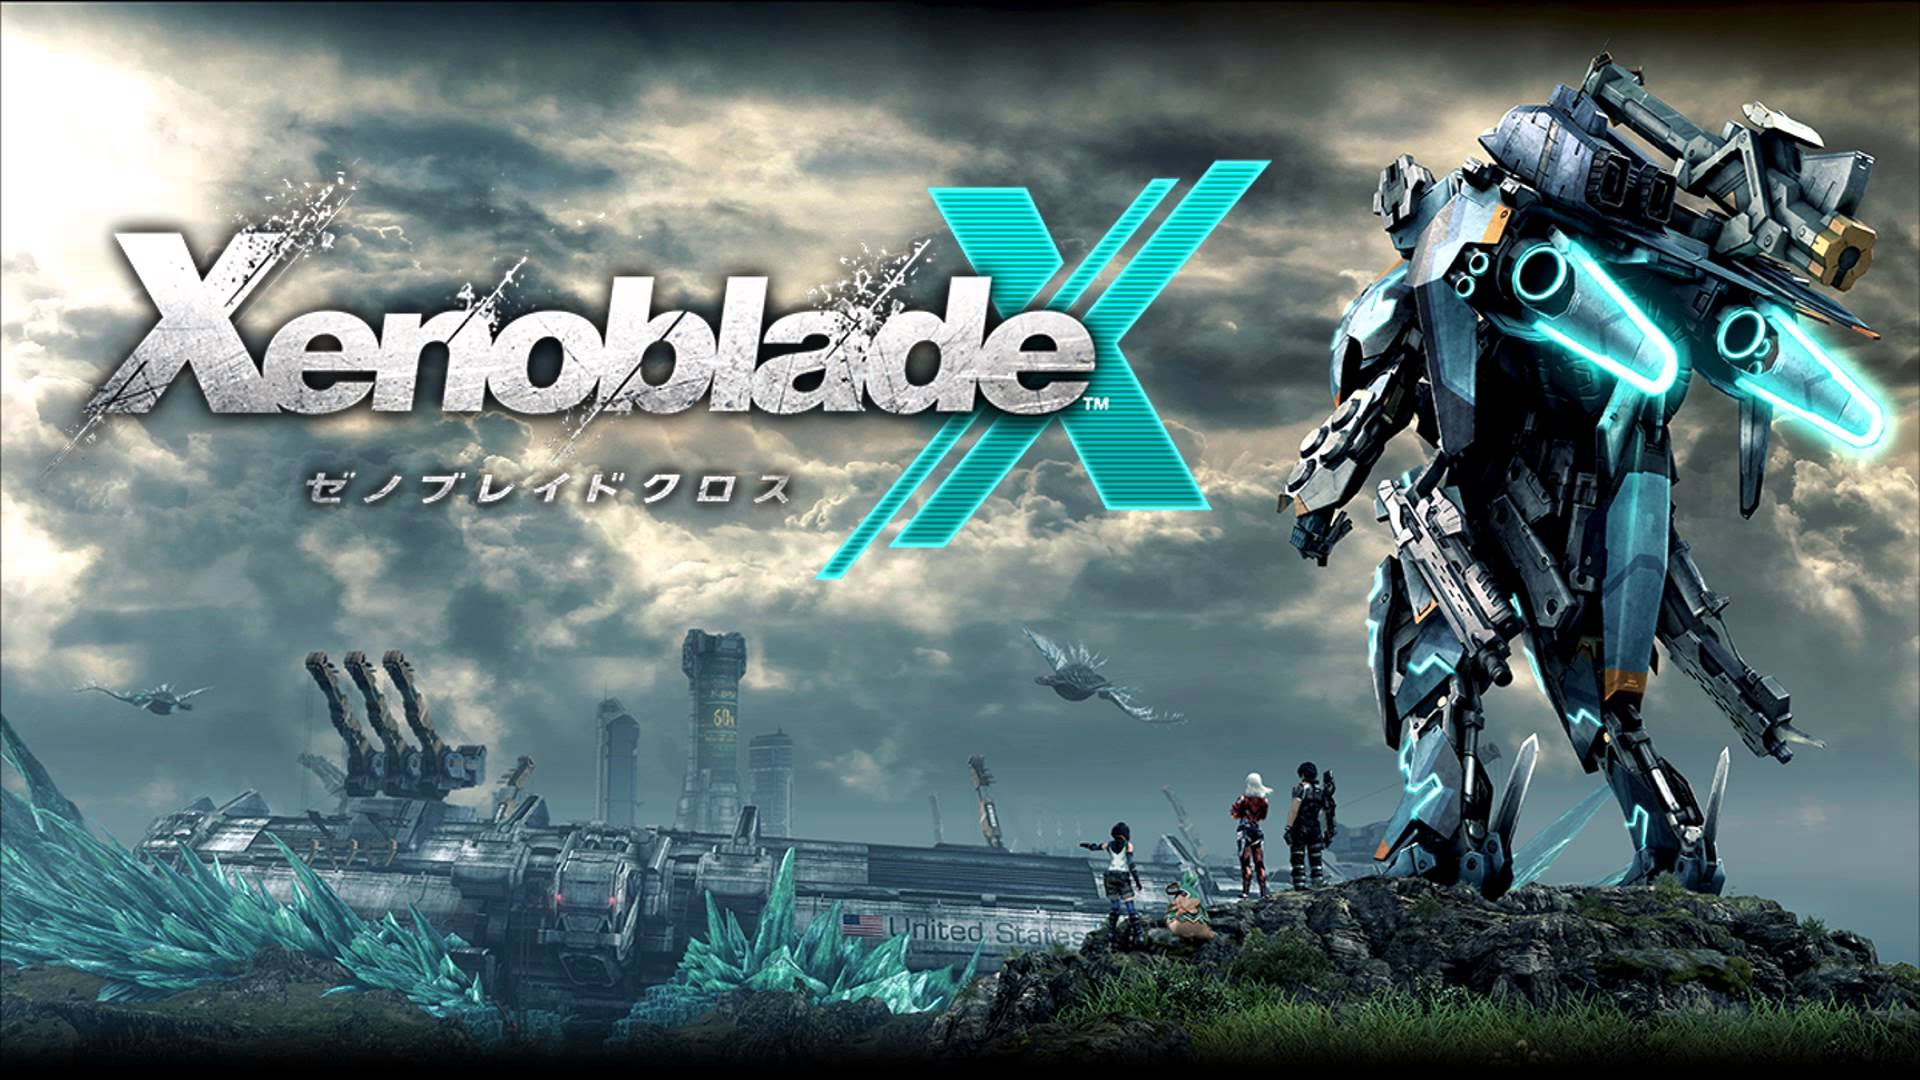 """Xenoblade Chronicles X"" Direct Information - Details on Planet Mira and What Lives On It"